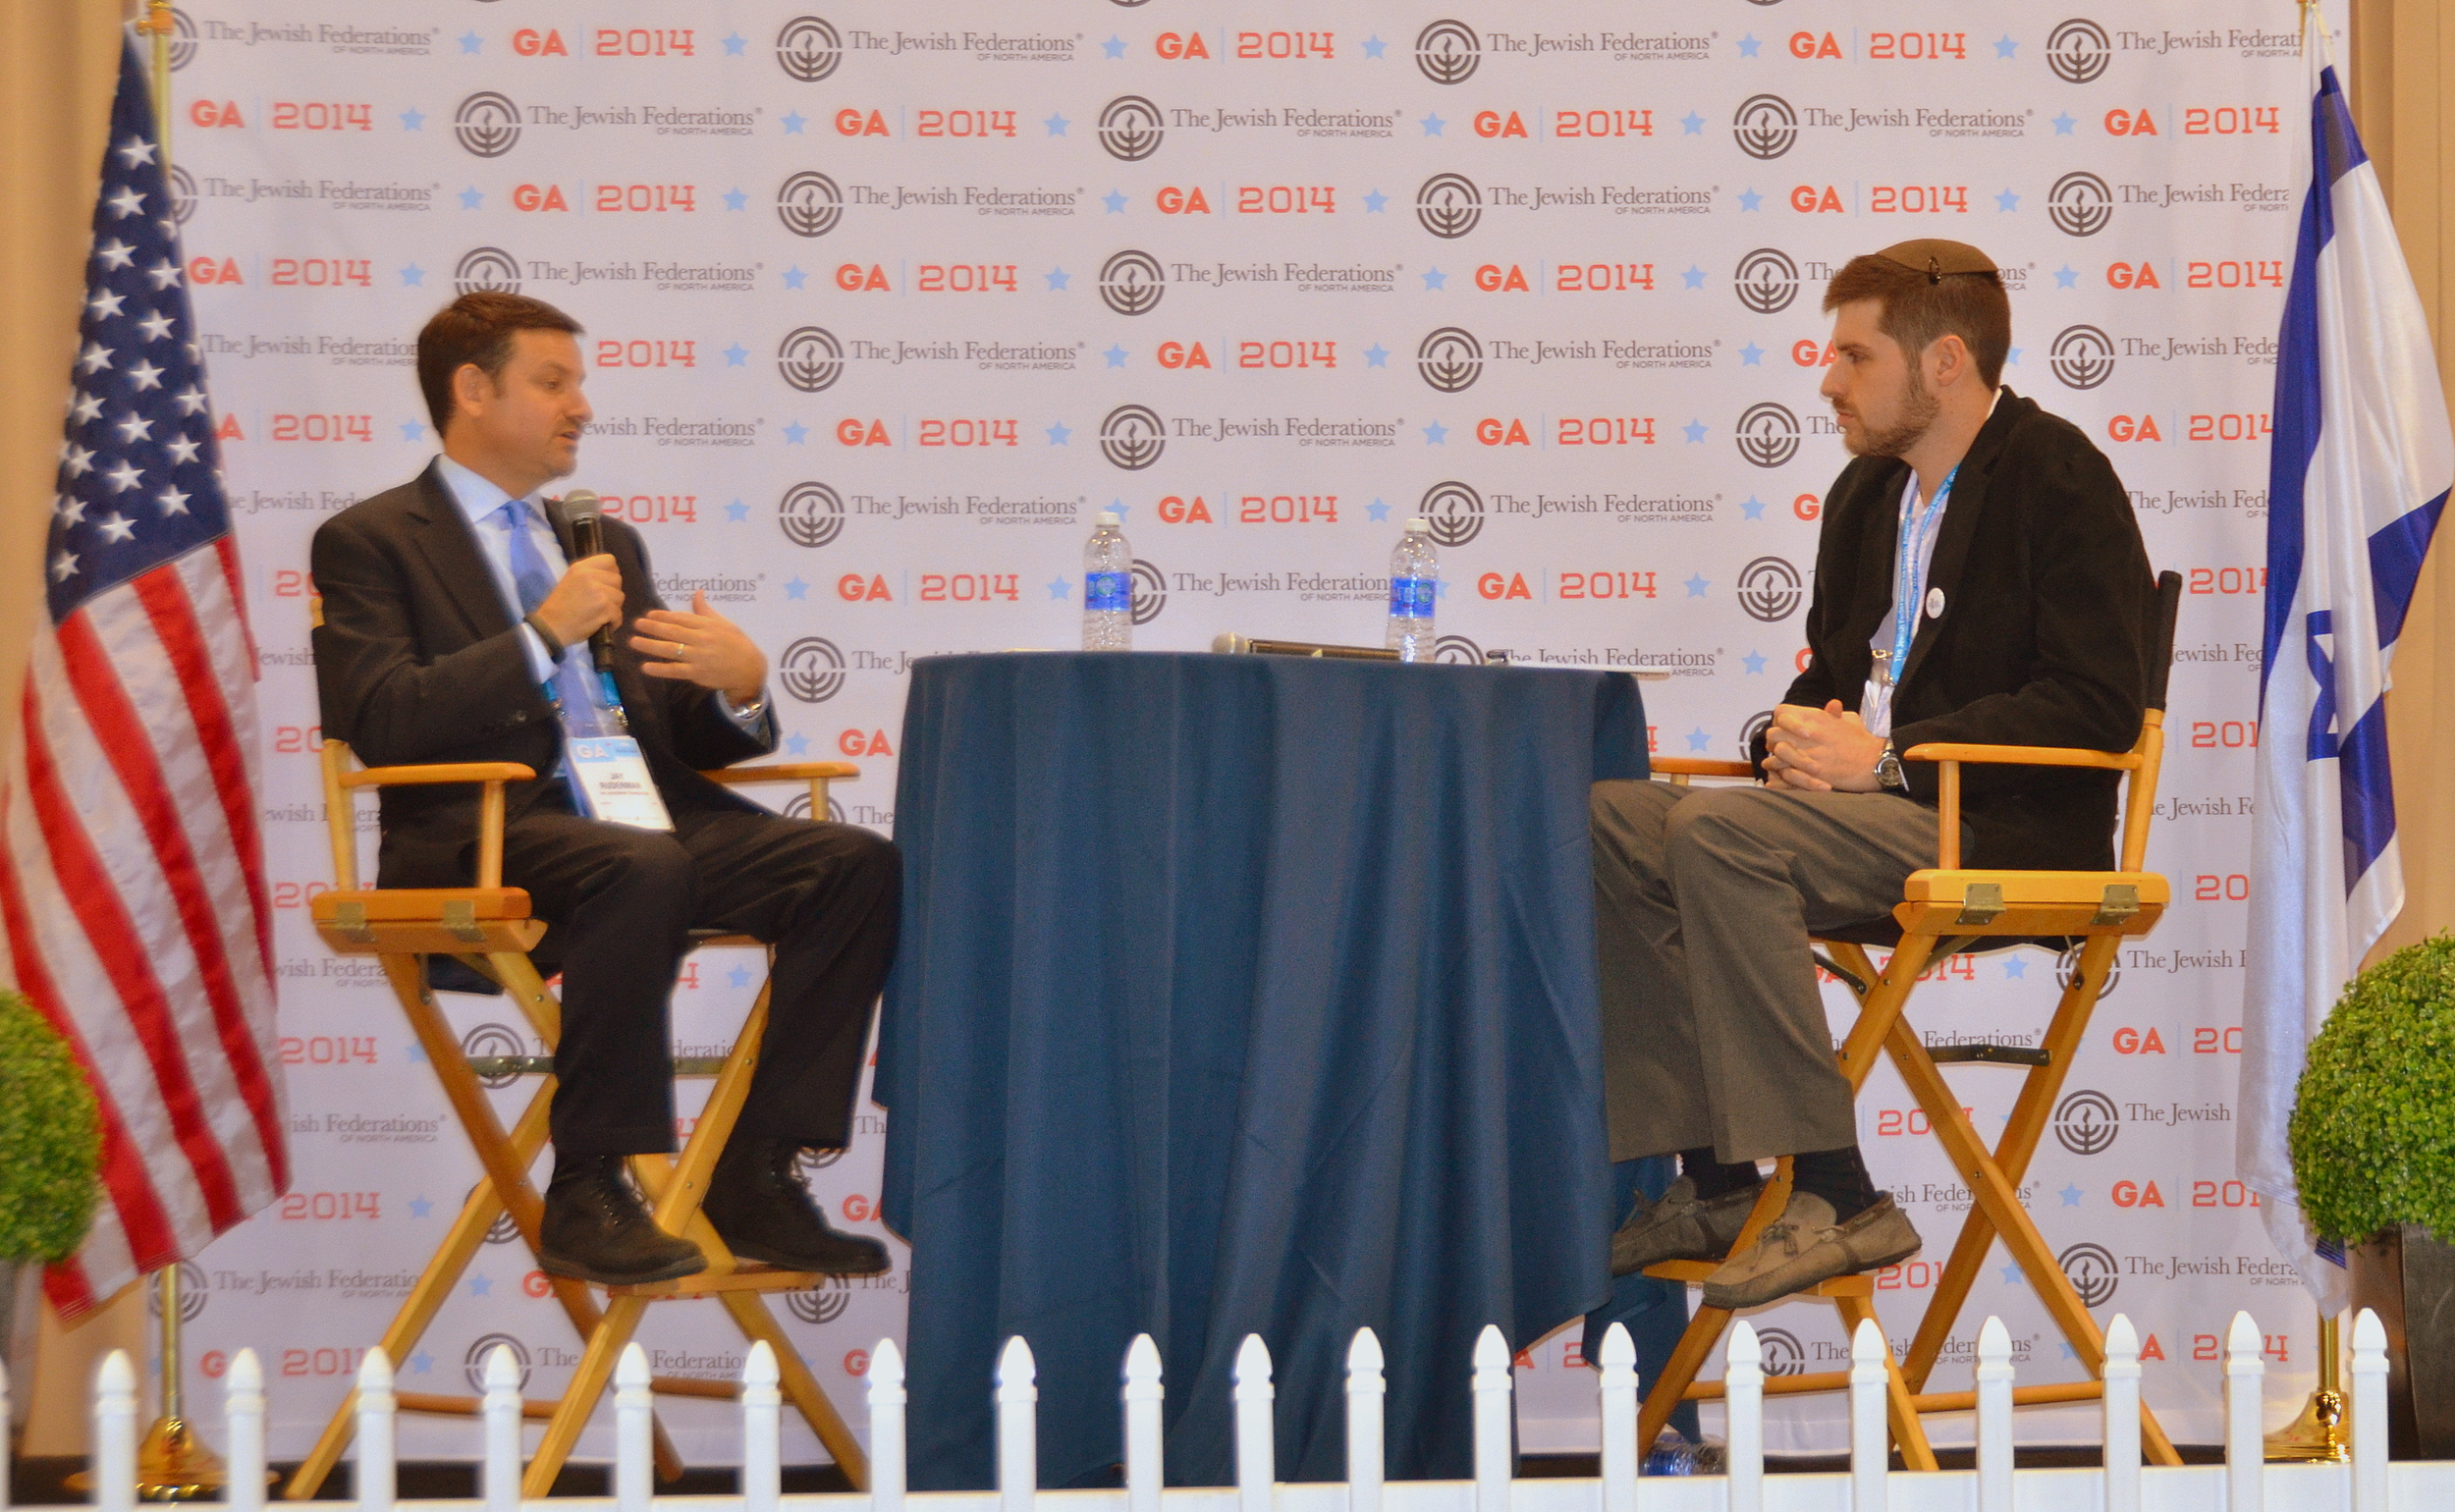 Click photo to download. Caption: Ruderman Family Foundation President Jay Ruderman (left) in conversation with JNS.org Editor in Chief Jacob Kamaras at the 2014 General Assembly of the Jewish Federations of North America. Credit: Maxine Dovere.